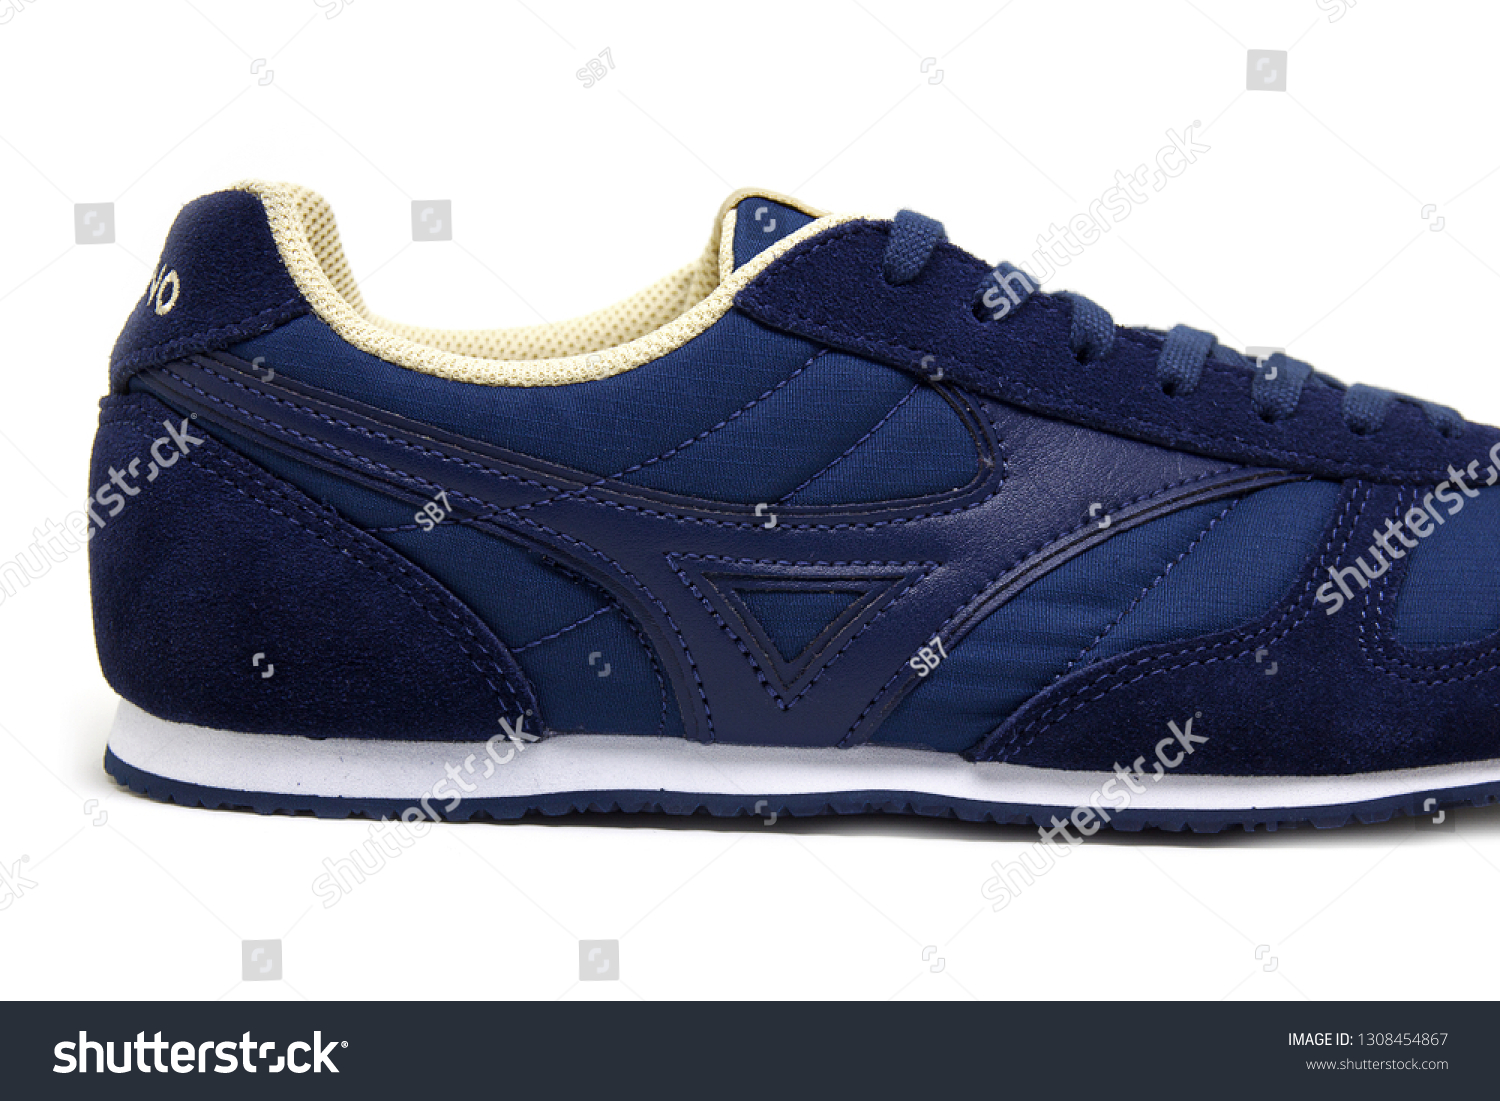 5e8a0323b14e Mizuno sports style casual sneakers RS88 Navy blue or dress blue color  unisex shoes on white